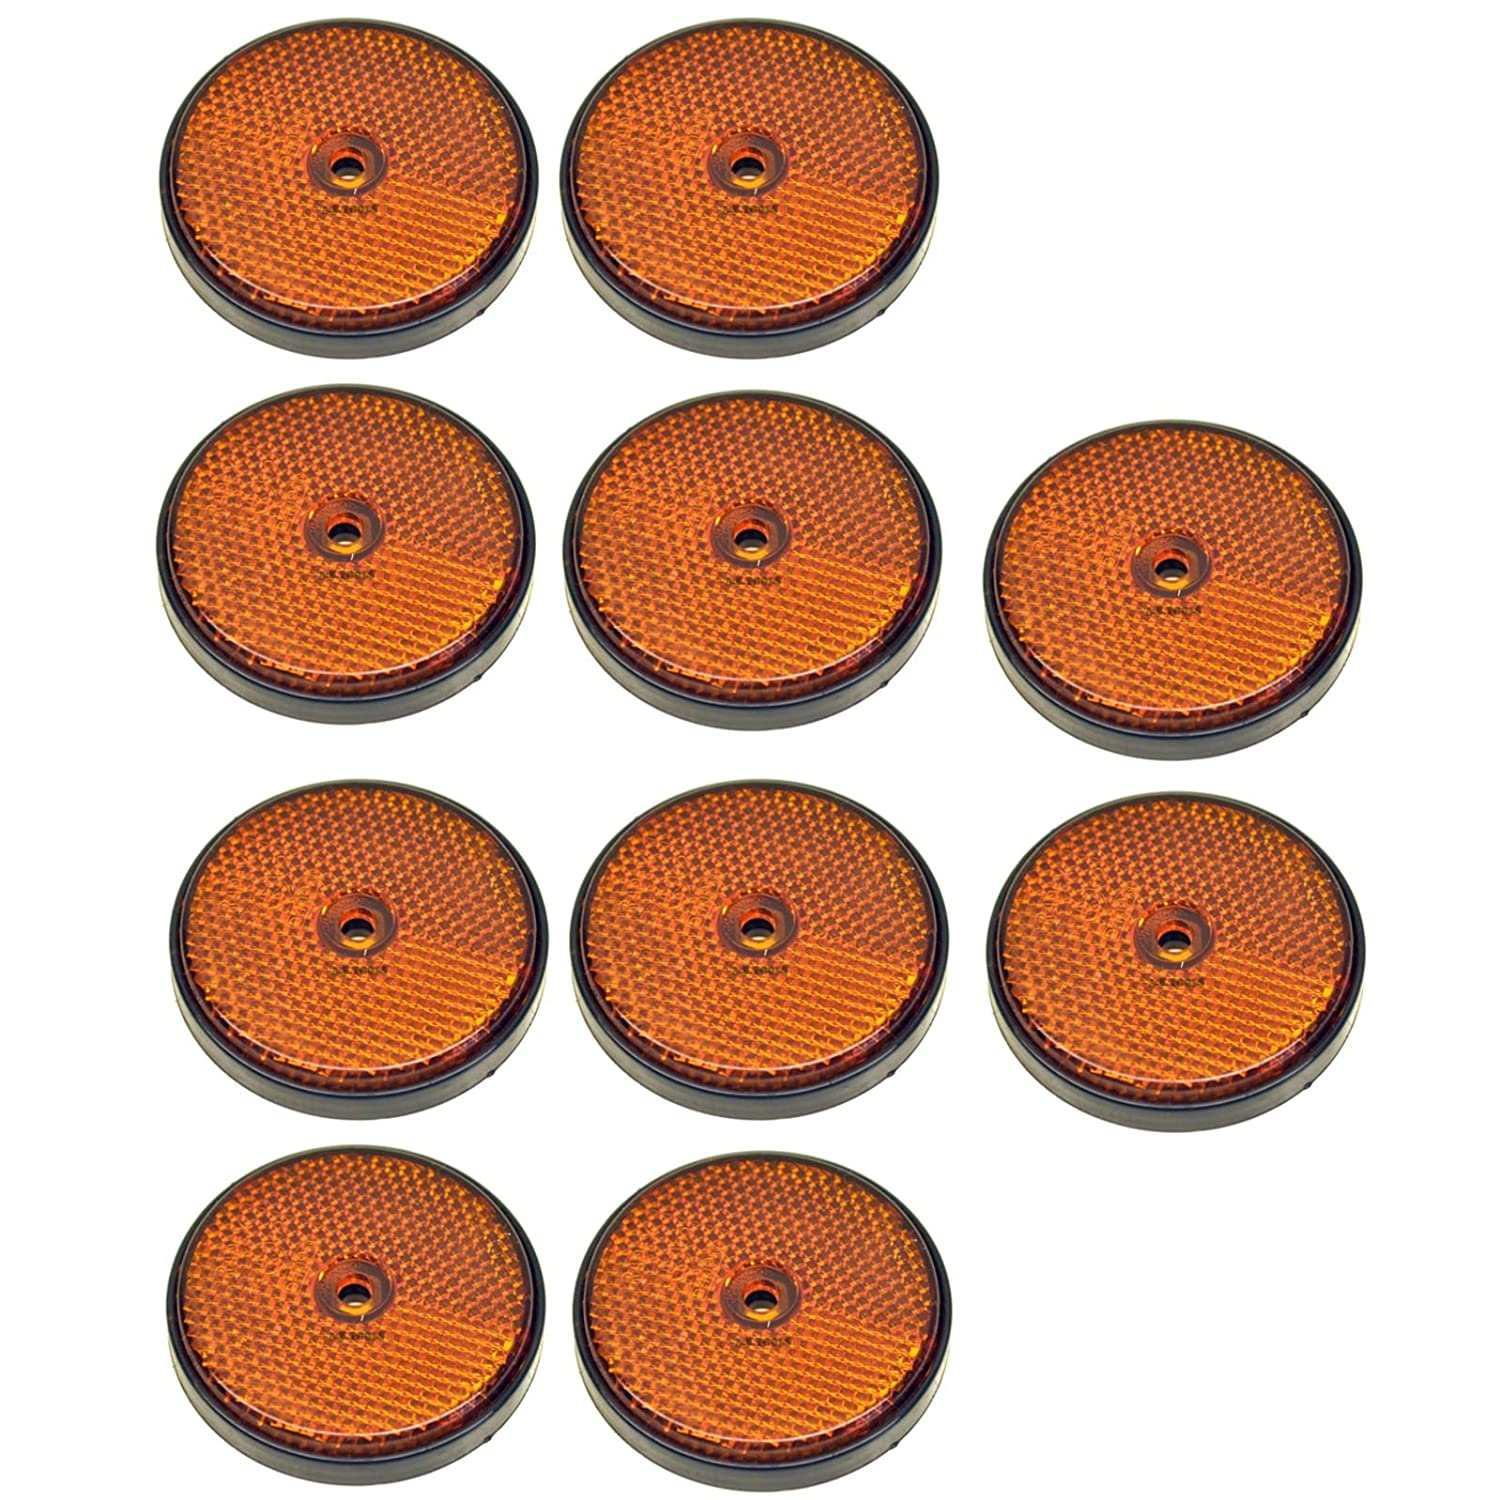 Amber Round Side Reflector Pack of 10 for Trailers Fence / Gate Posts TR066 AB Tools